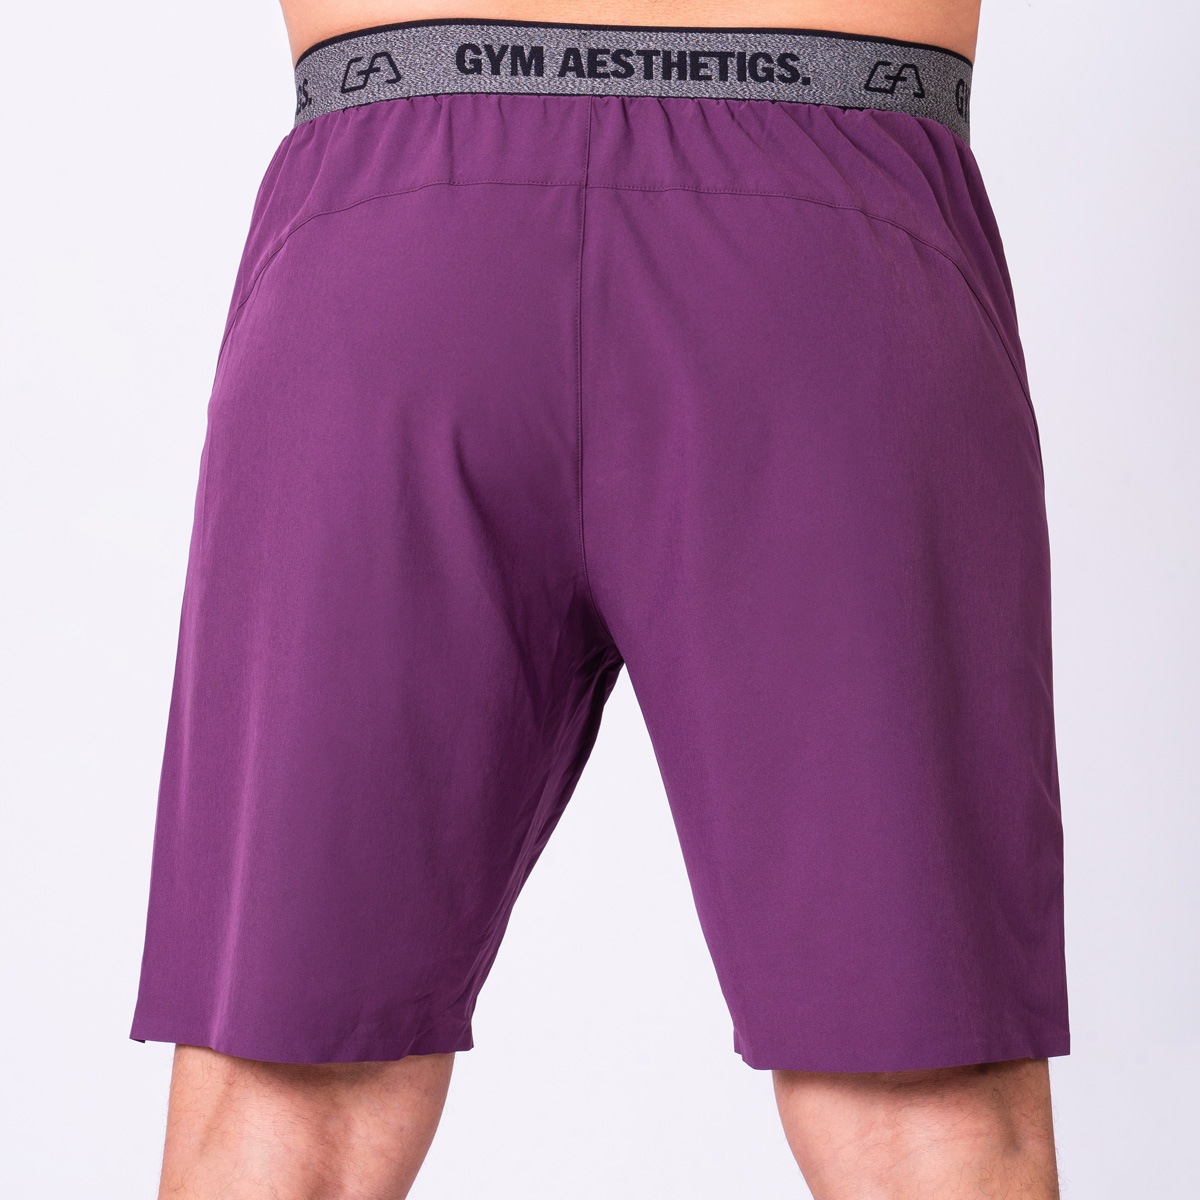 Essential 9 inch Shorts for Men in Purple | Gym Aesthetics